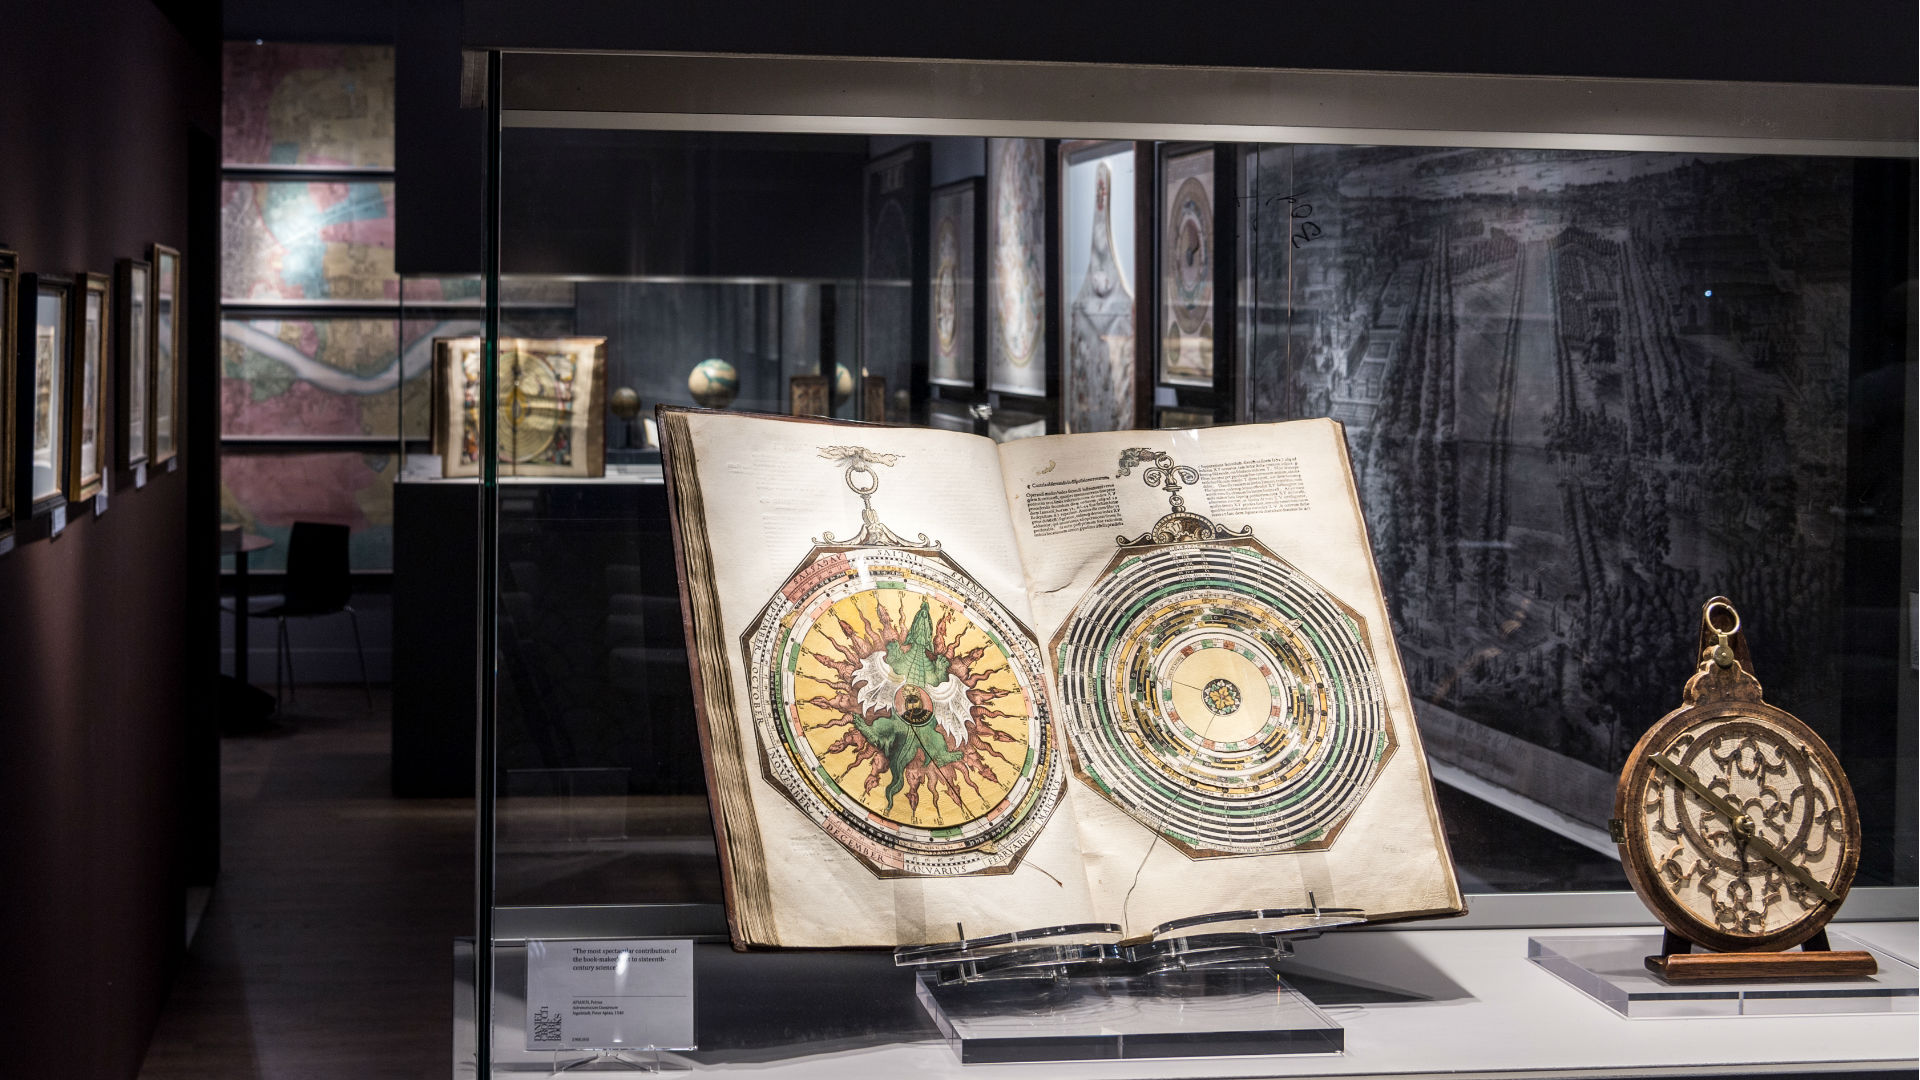 Installation view of Les Enluminures and Daniel Crouch at Masterpiece London 2018